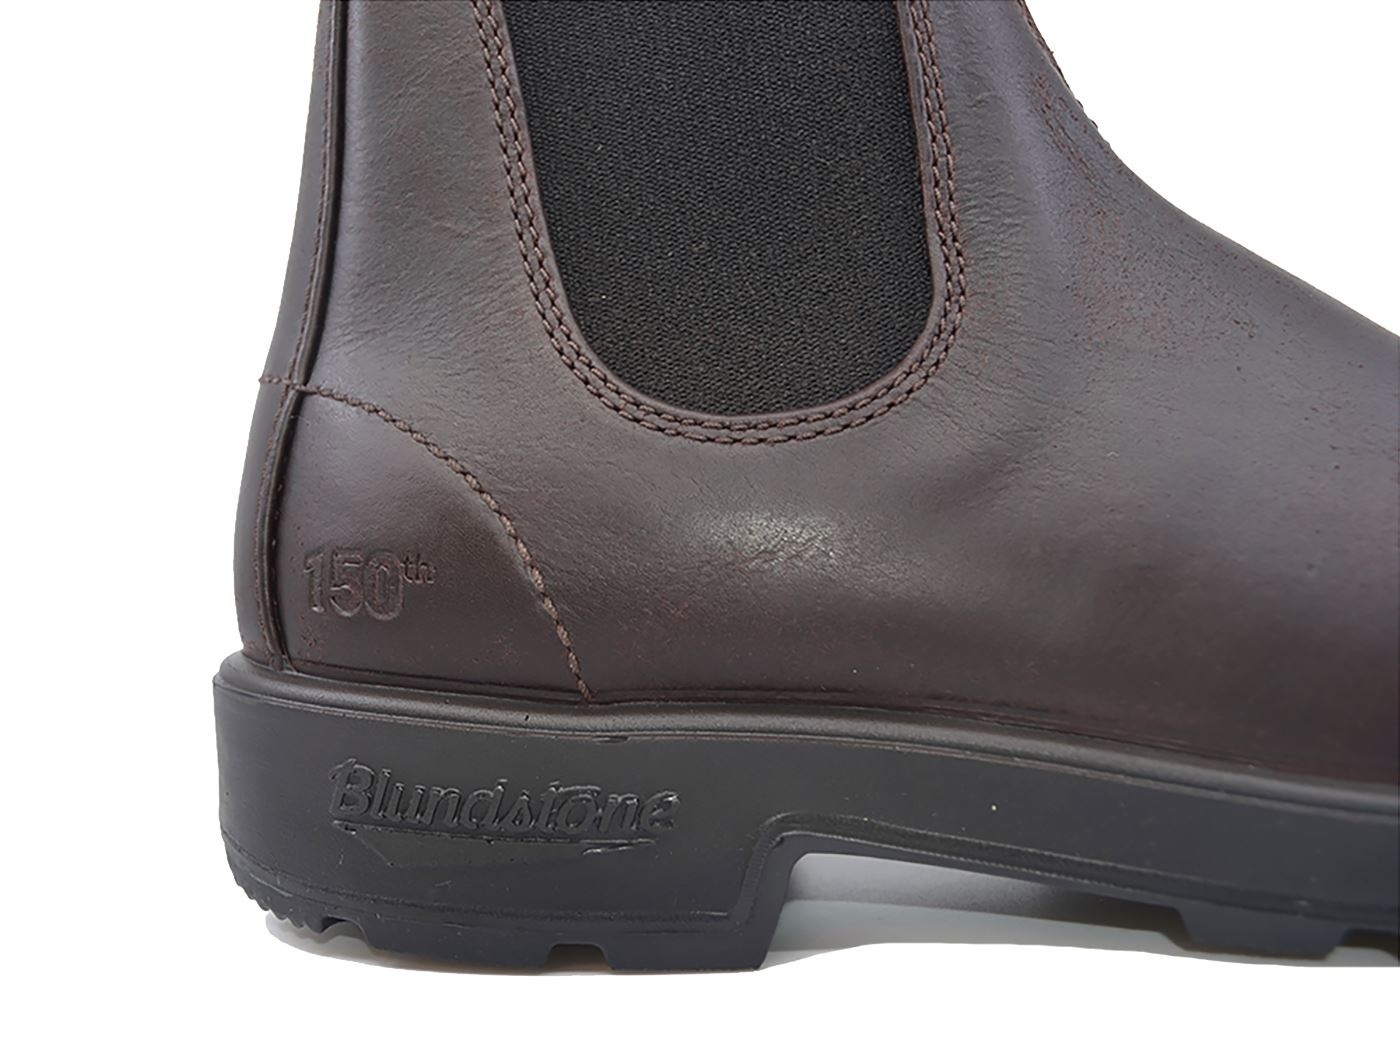 BLUNDSTONE 150 LIMITED EDITION 150th ANNIVERSARY STIVALETTO panama.mainapps.com